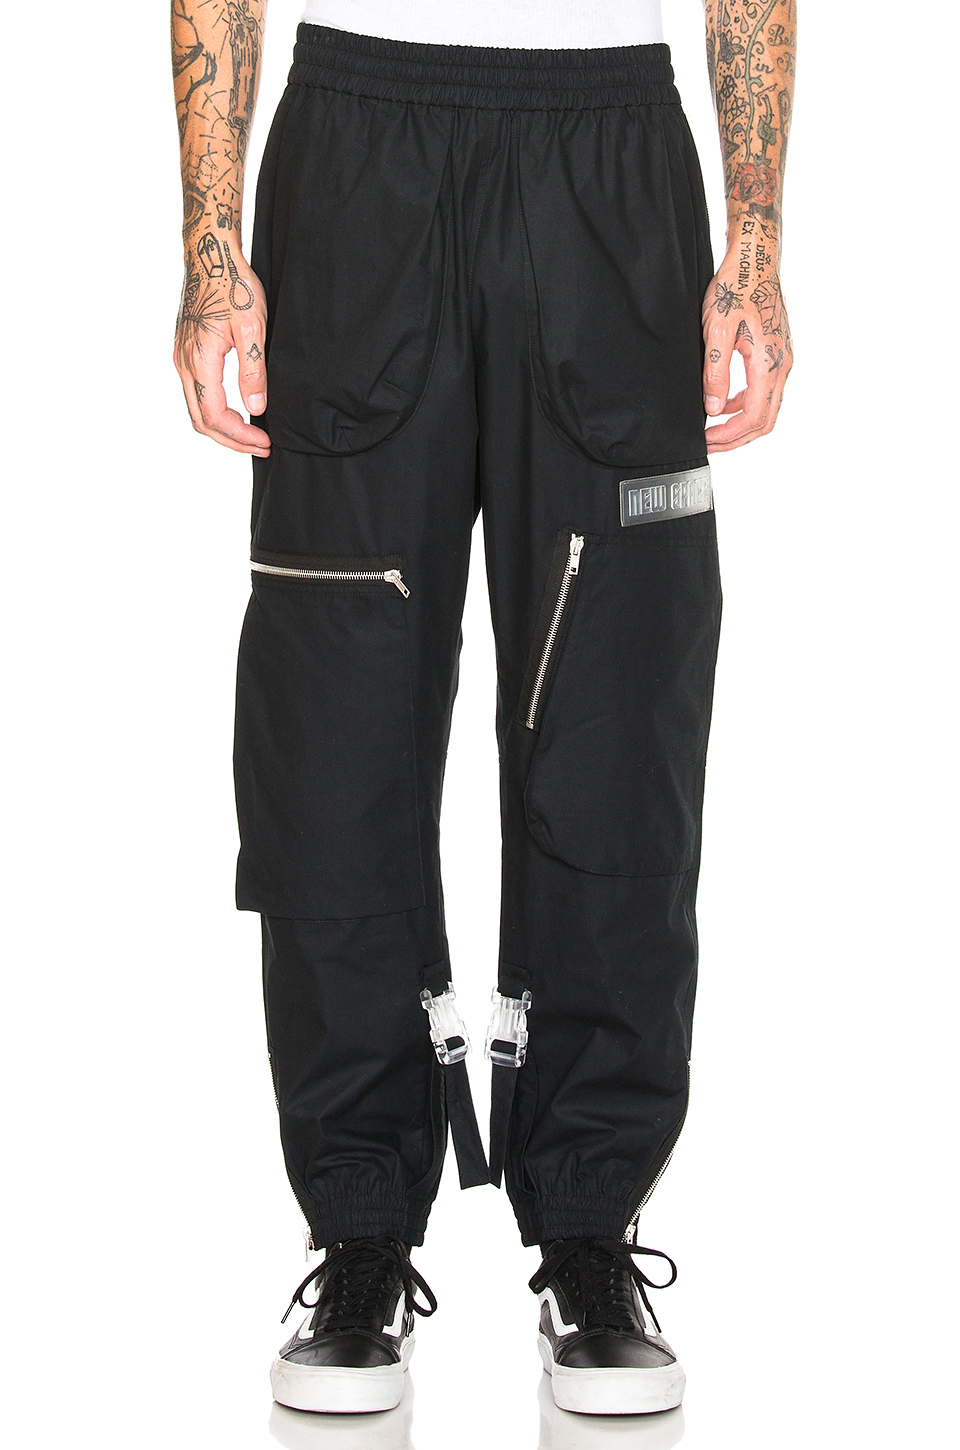 OFF-WHITE ART DAD Shuttle Track Pant in Black & Multicolor